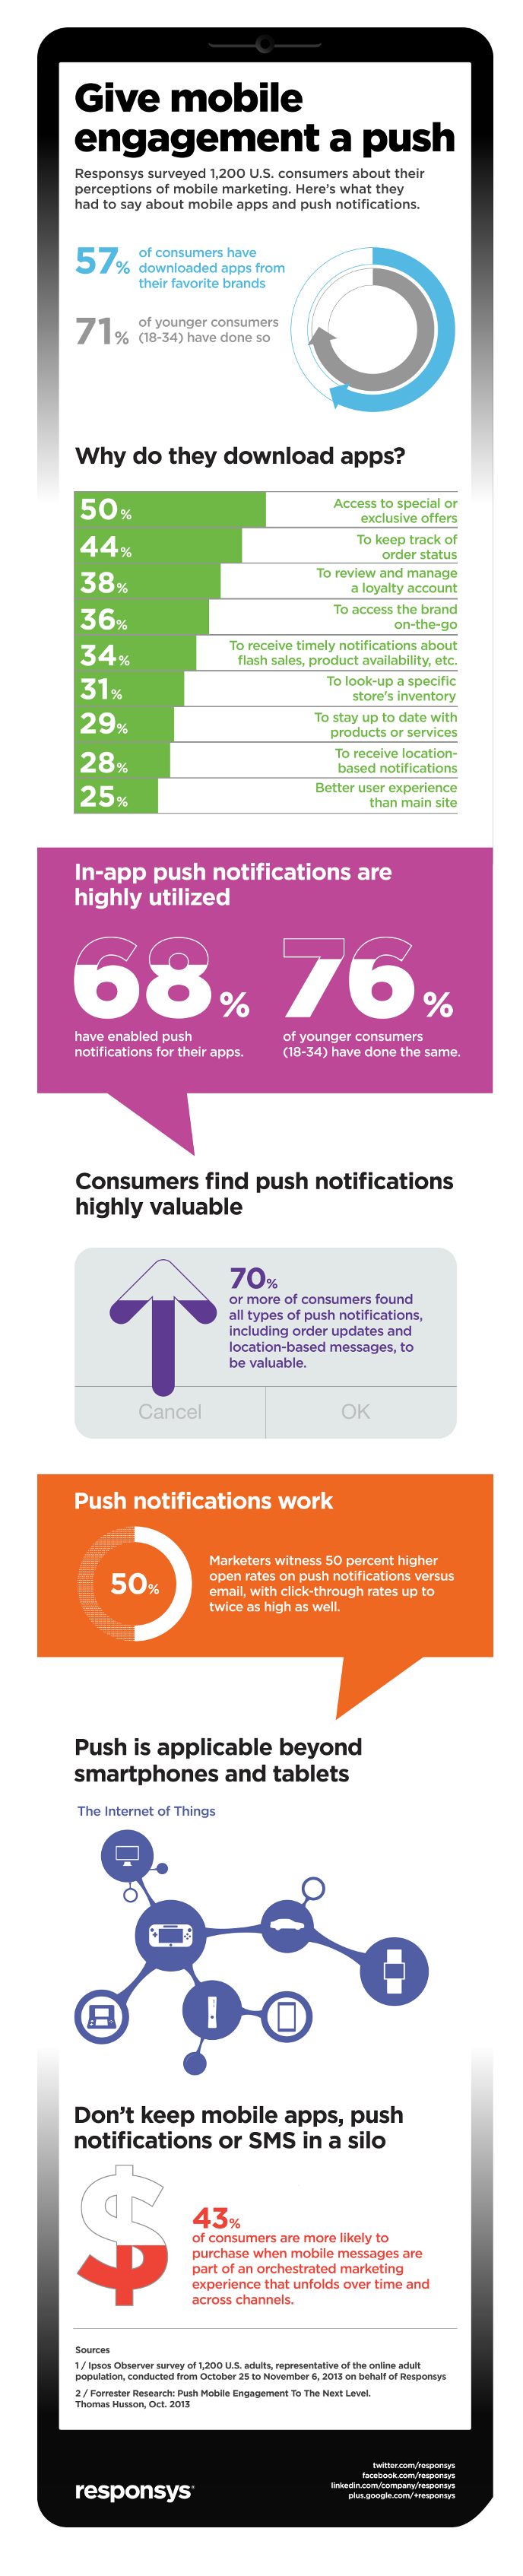 infografia-notificaciones-push-apps